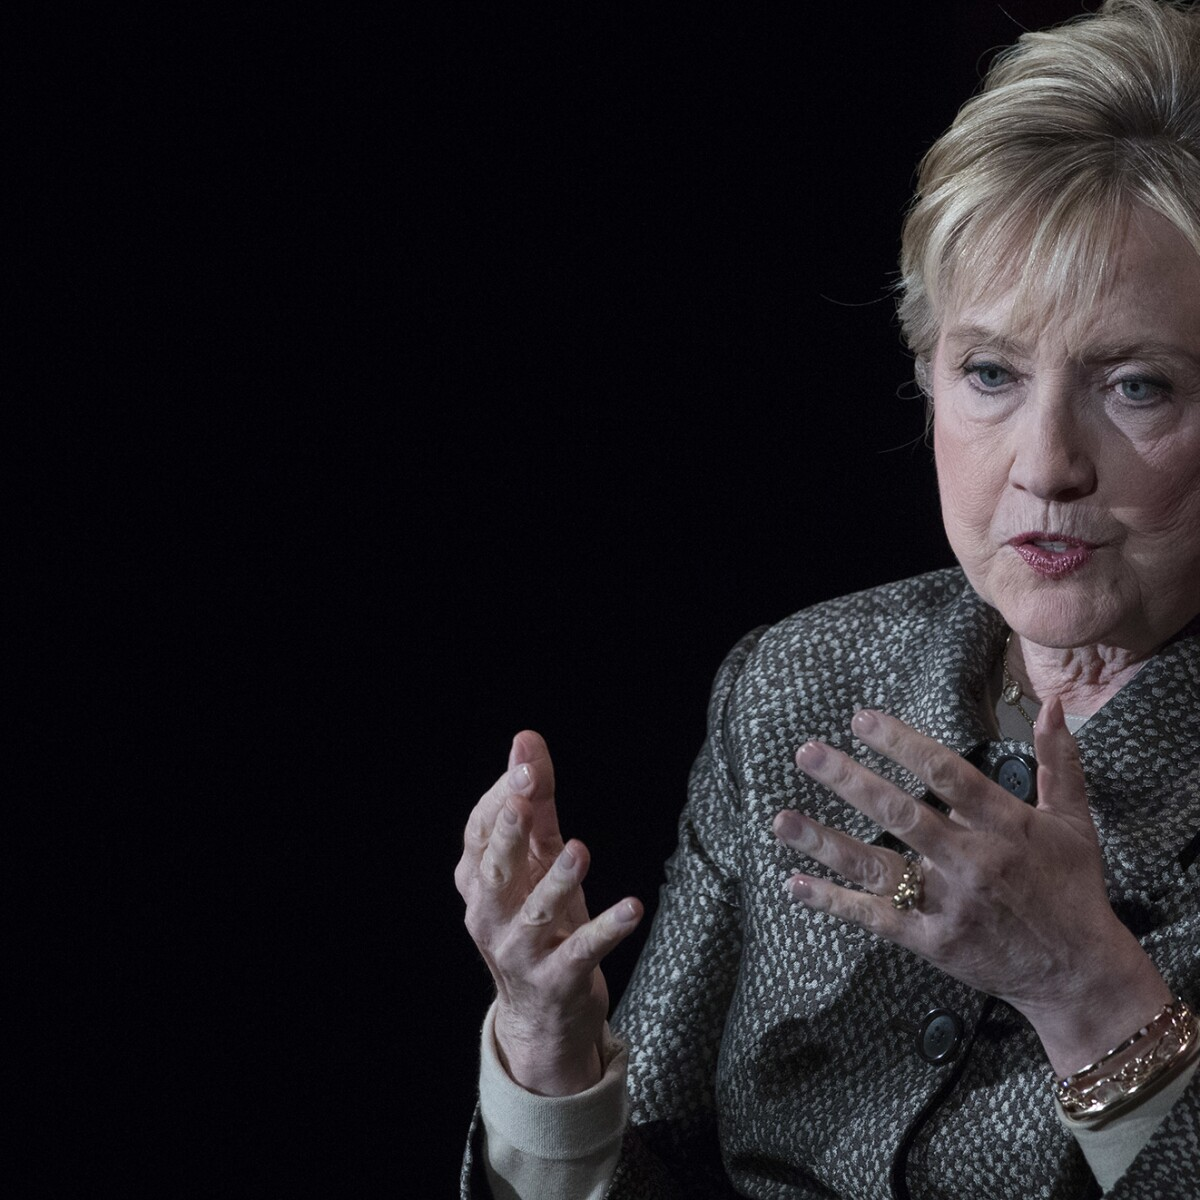 Hillary Clinton blames press for covering email scandal 'like it was Pearl Harbor'